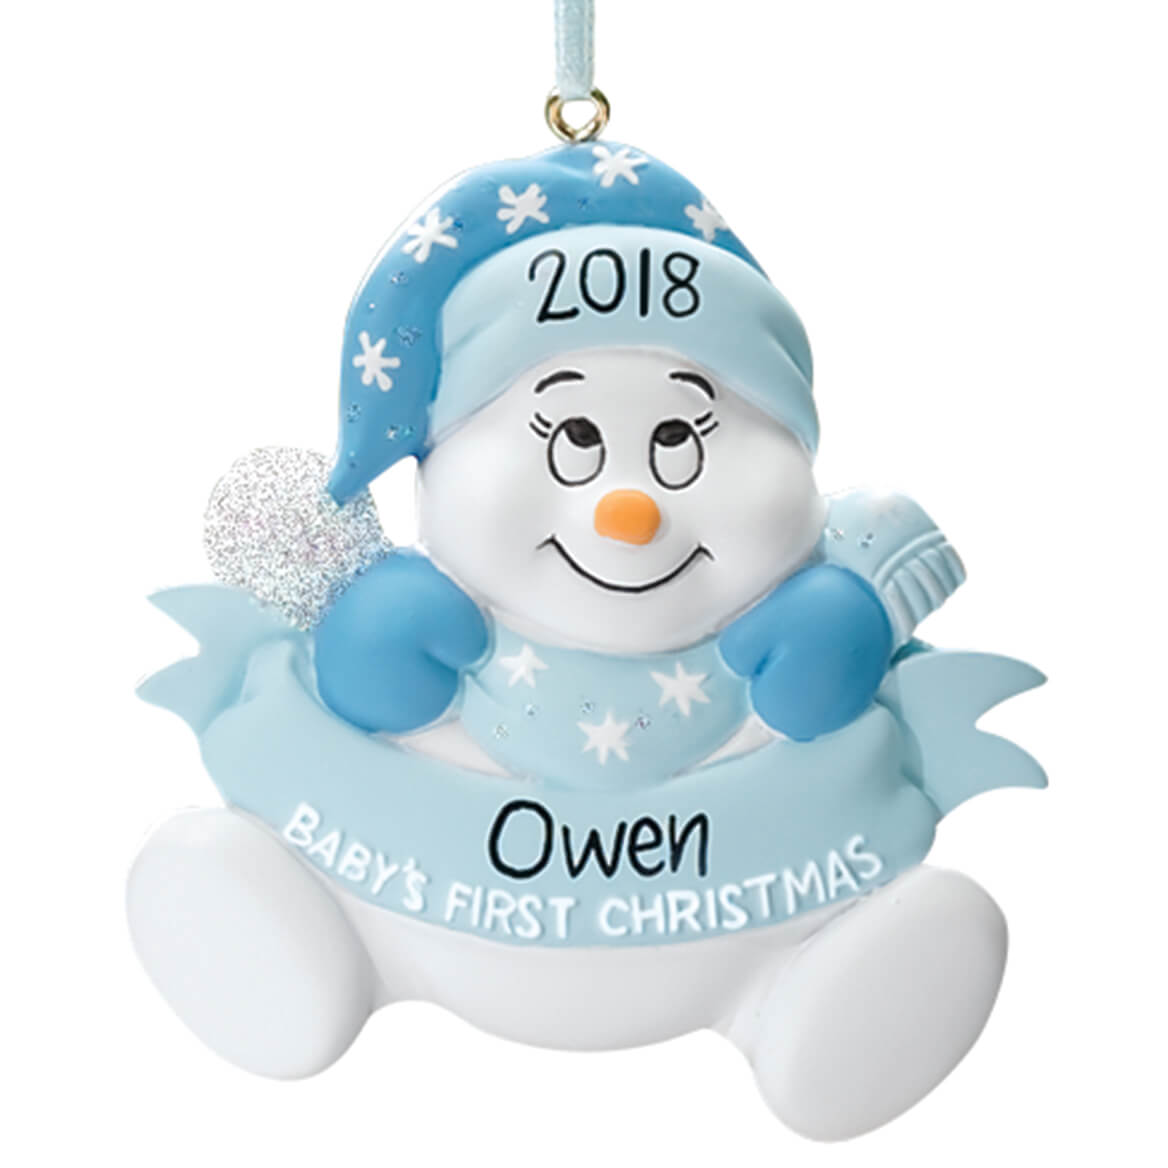 Snowbaby's First Christmas Ornament